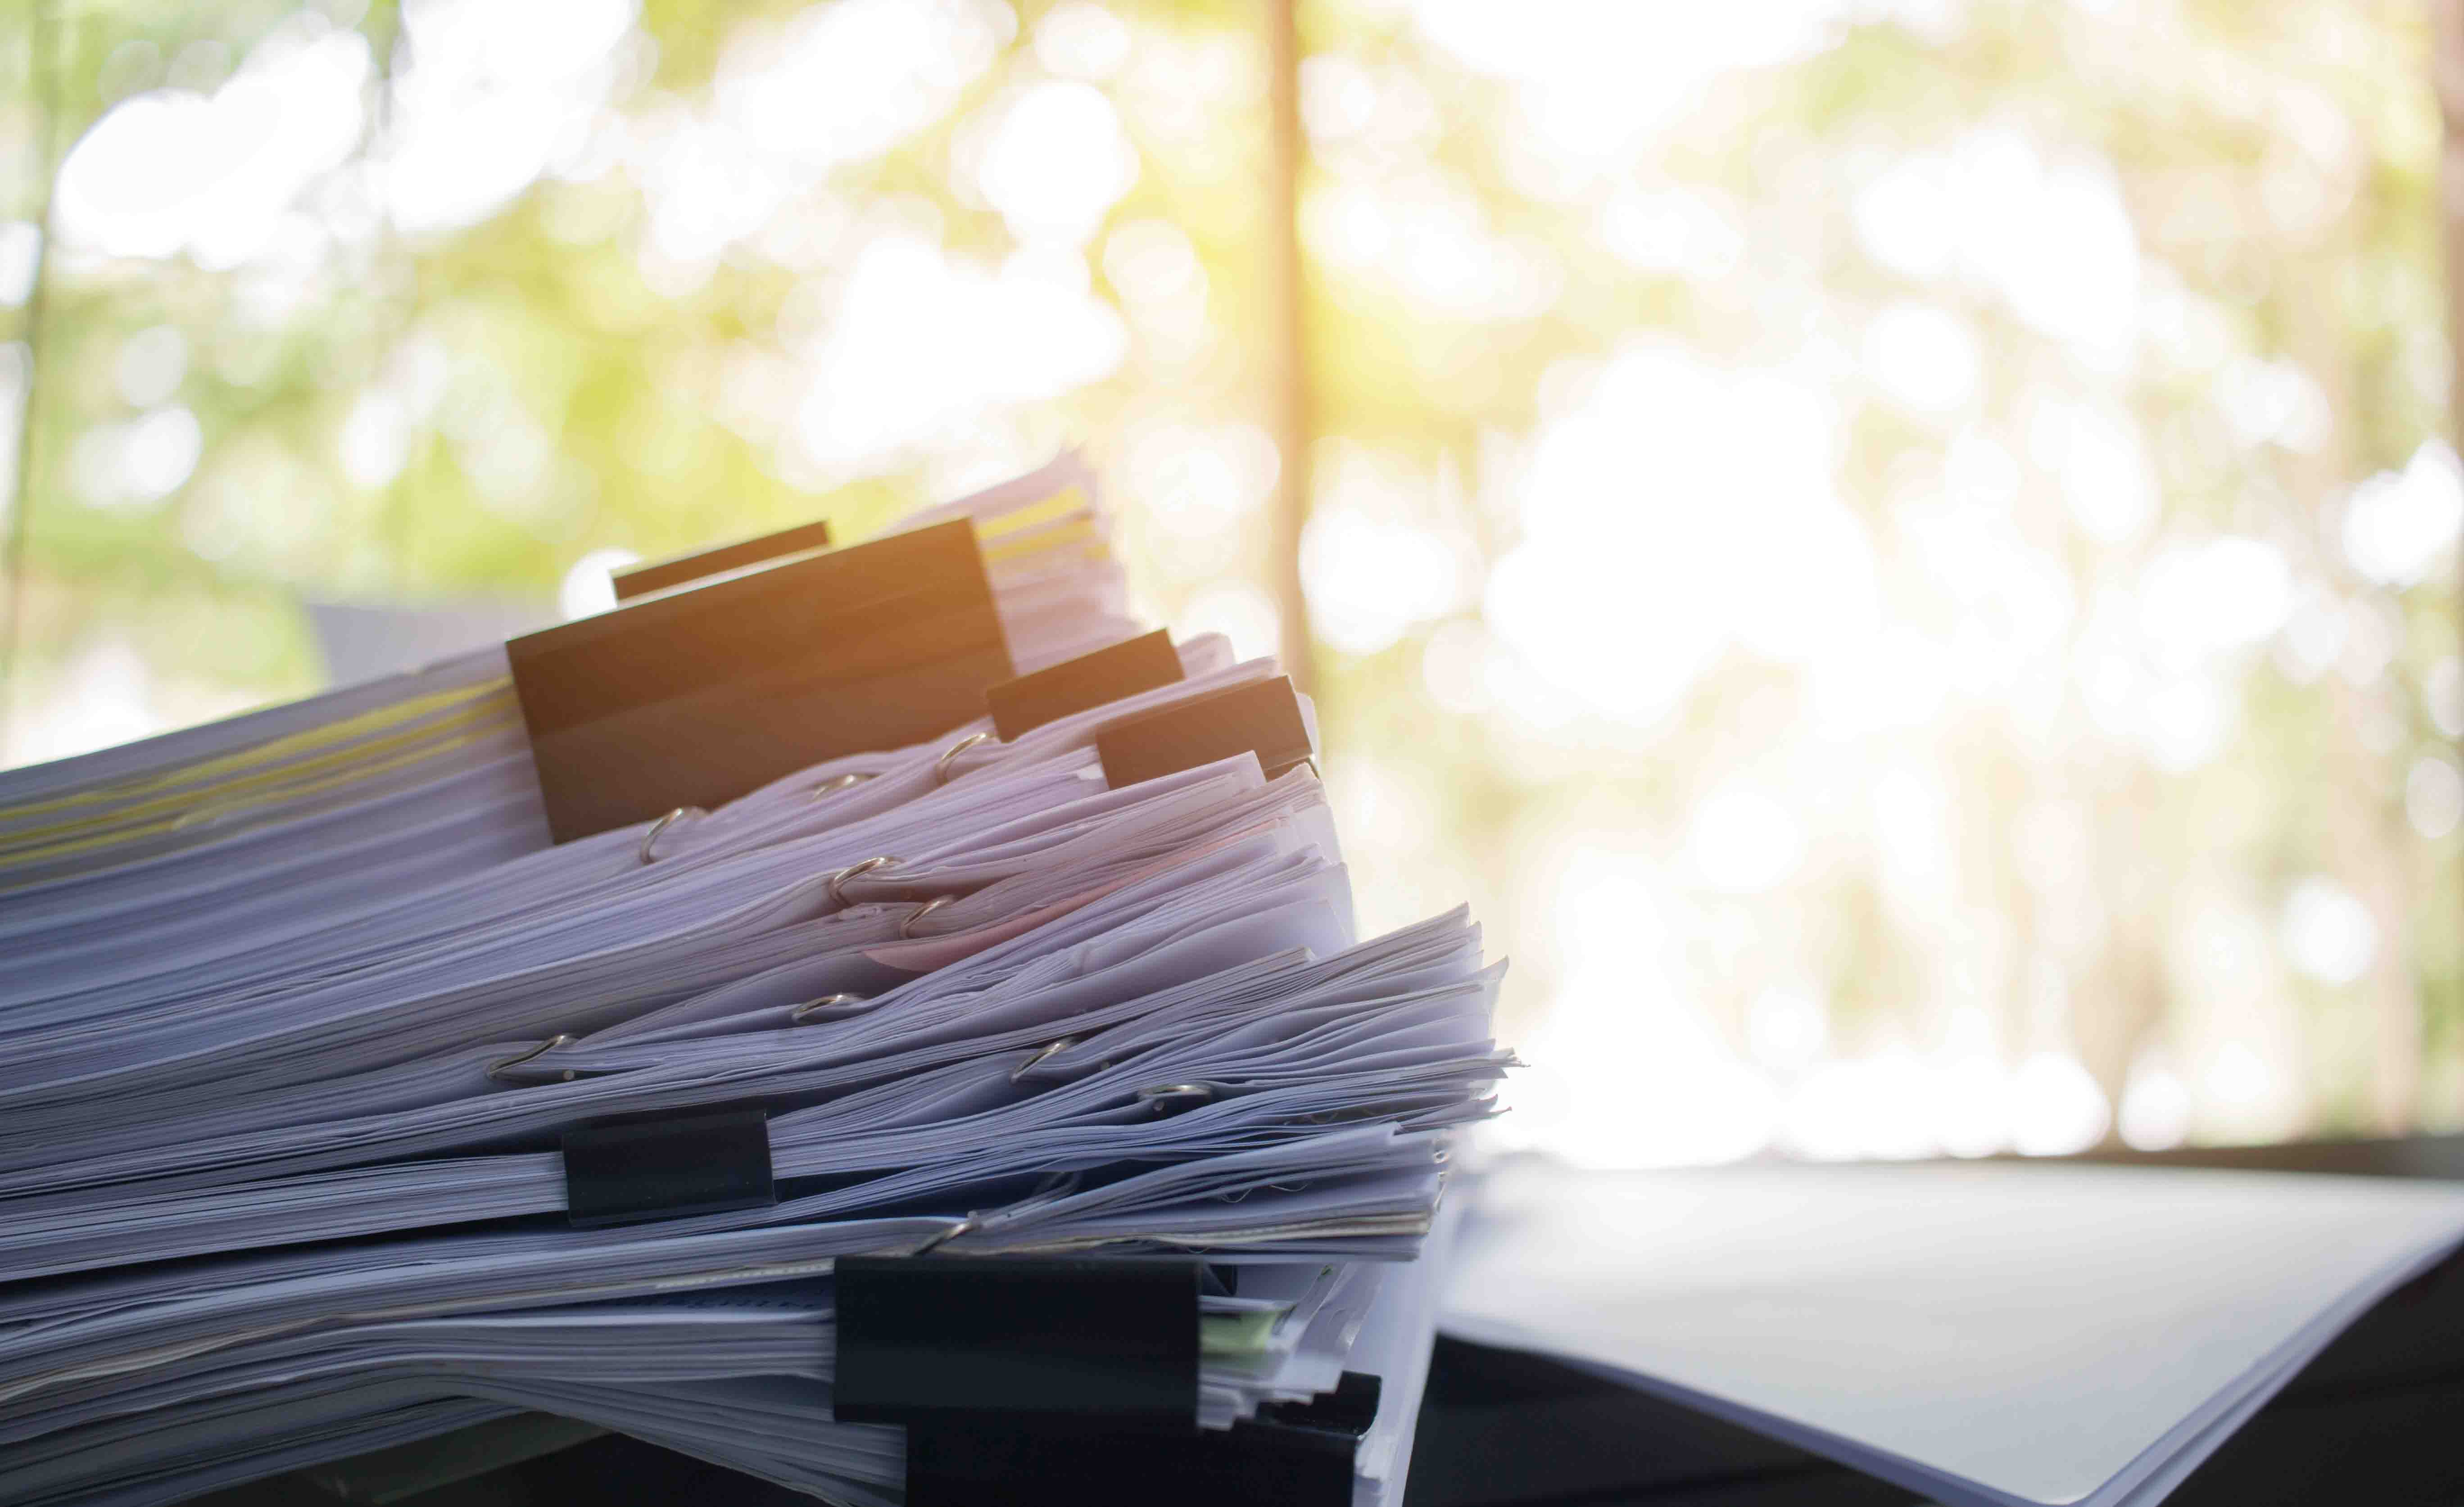 Stack of paper files on work desk in office